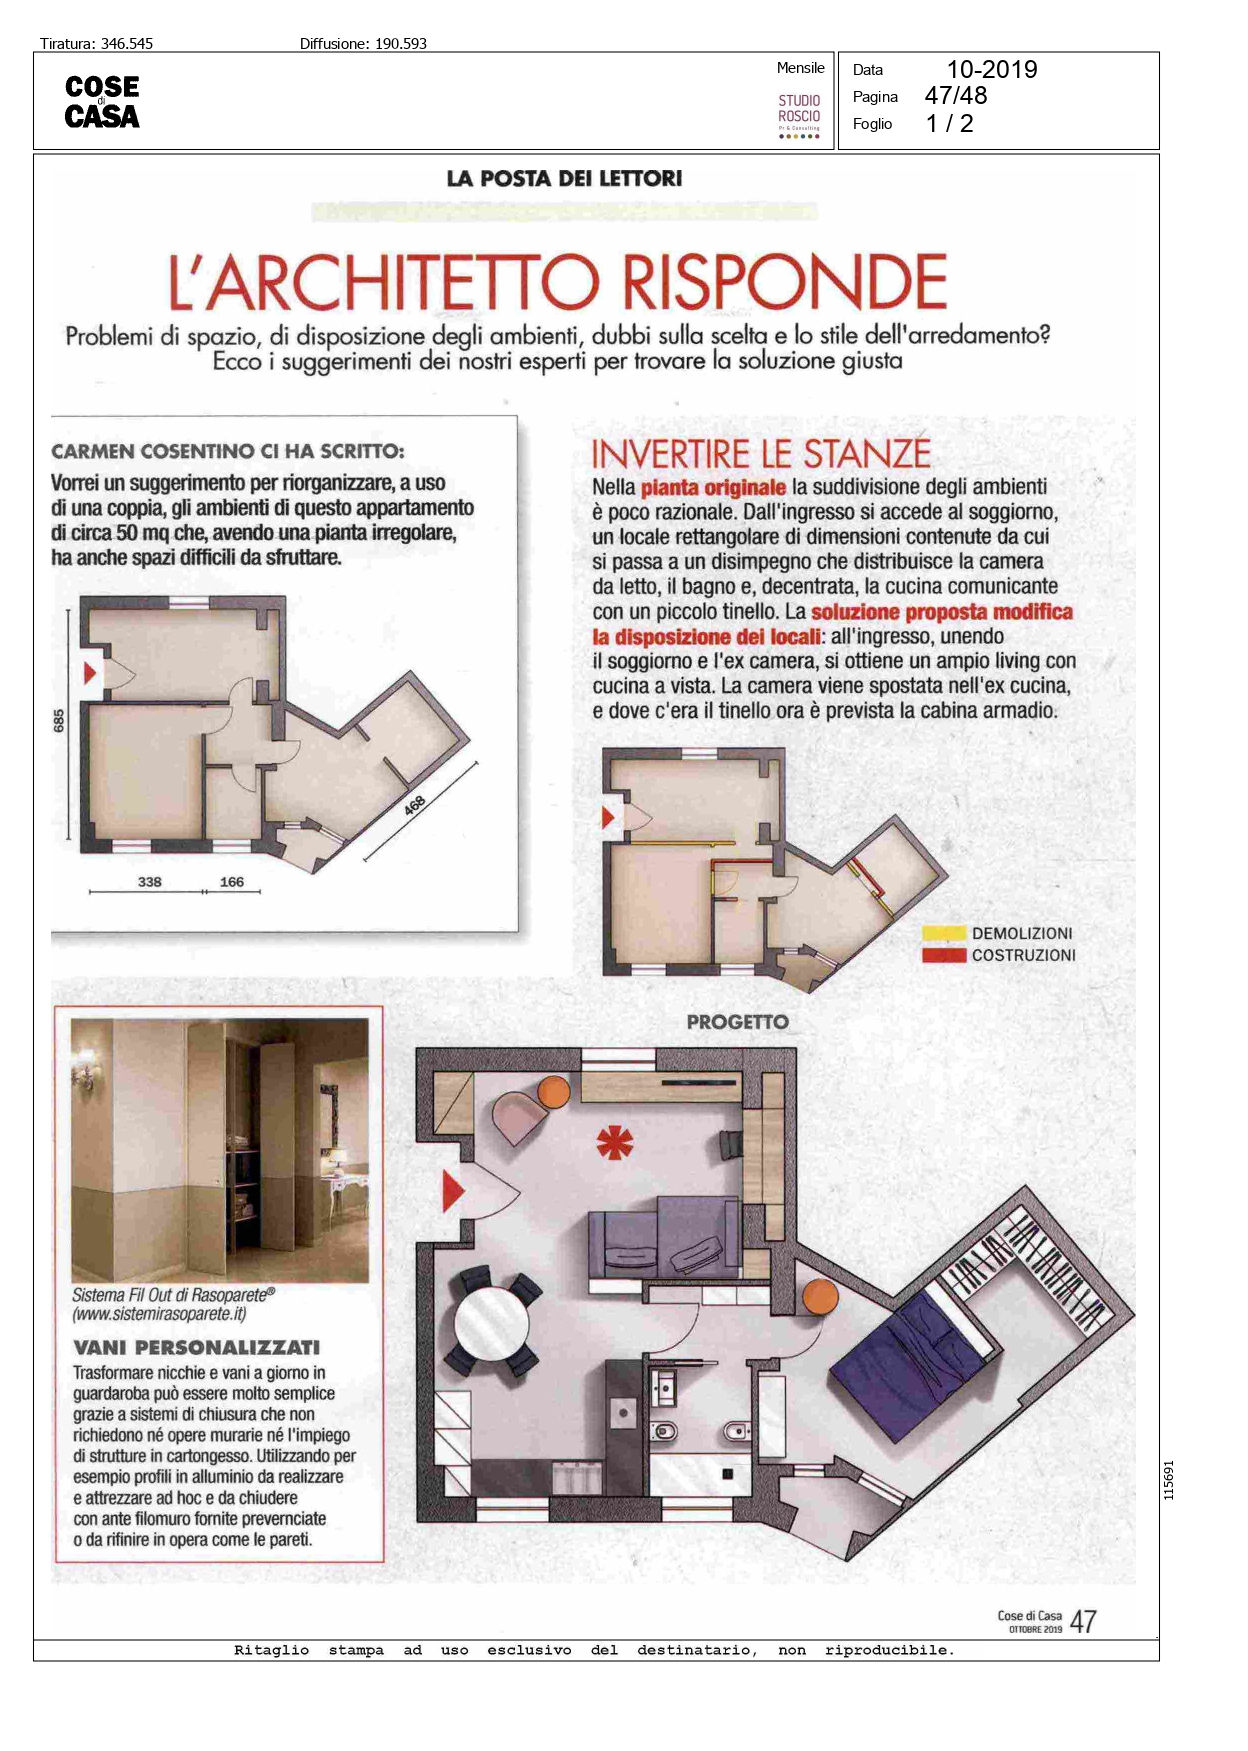 1ottobre2019_COSE_DI_CASA_pages-to-jpg-0001.jpg